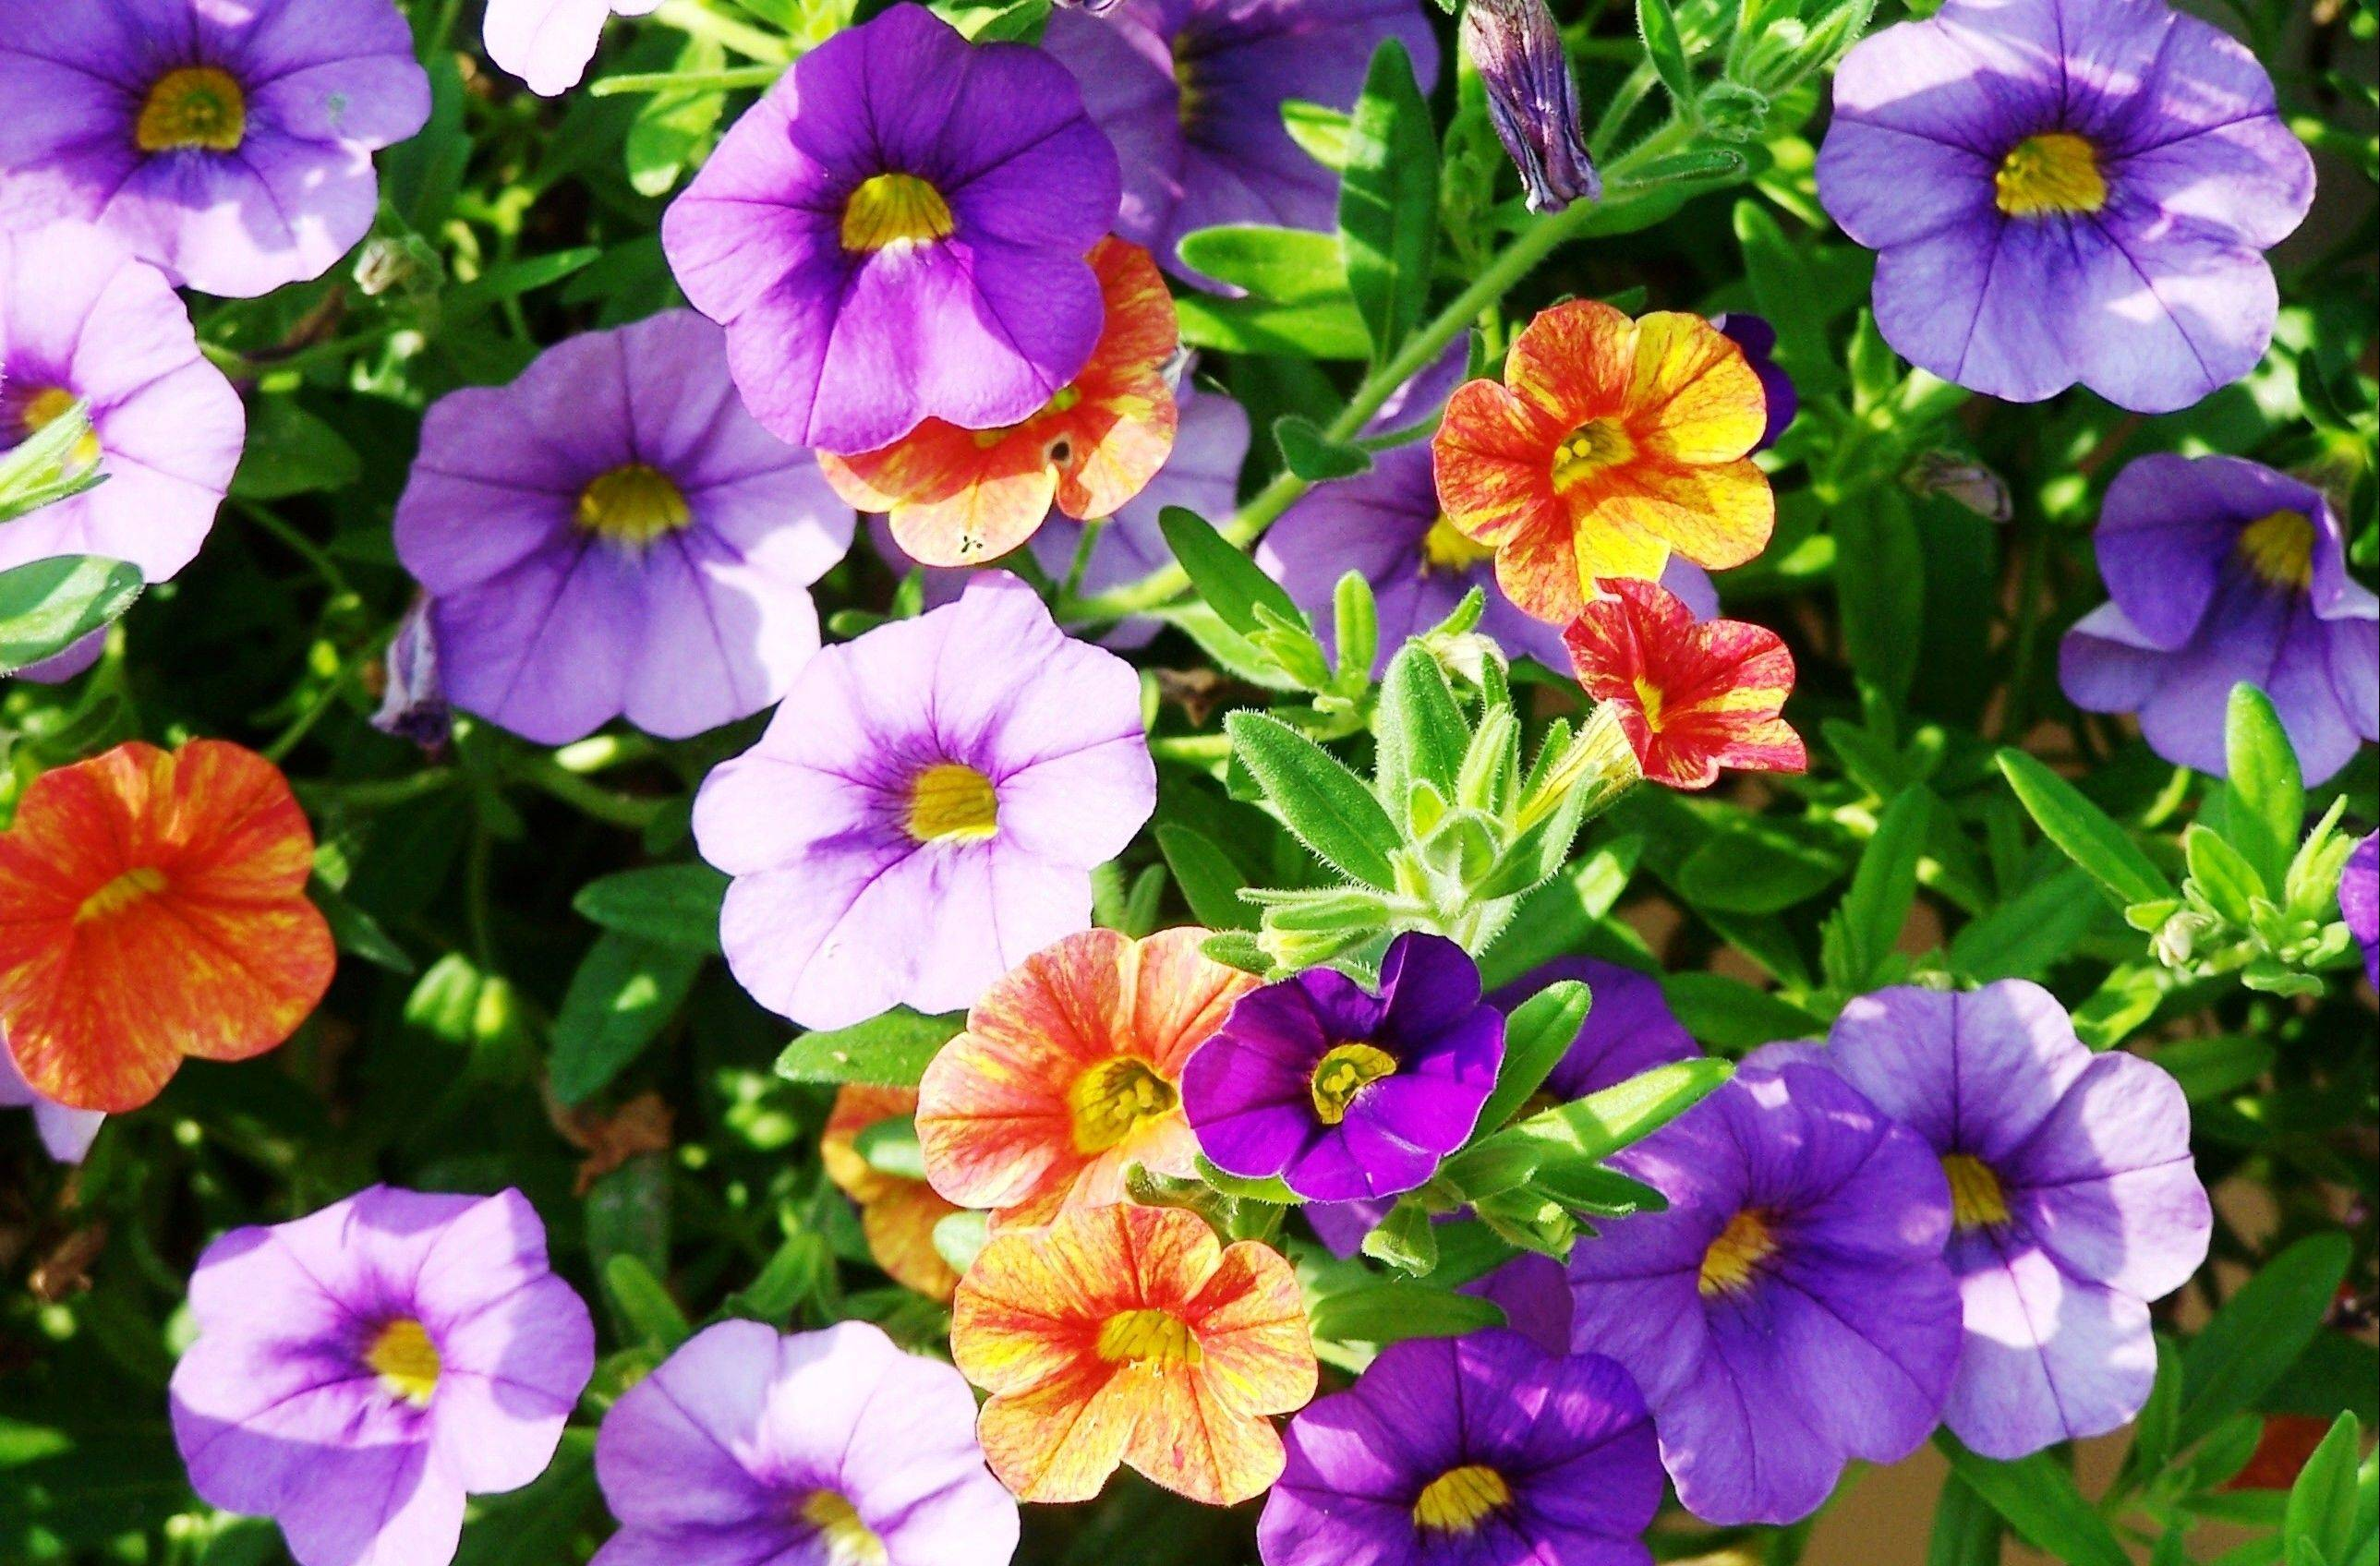 Calibrachoa flowers are perfect for containers as they trail over the edge.